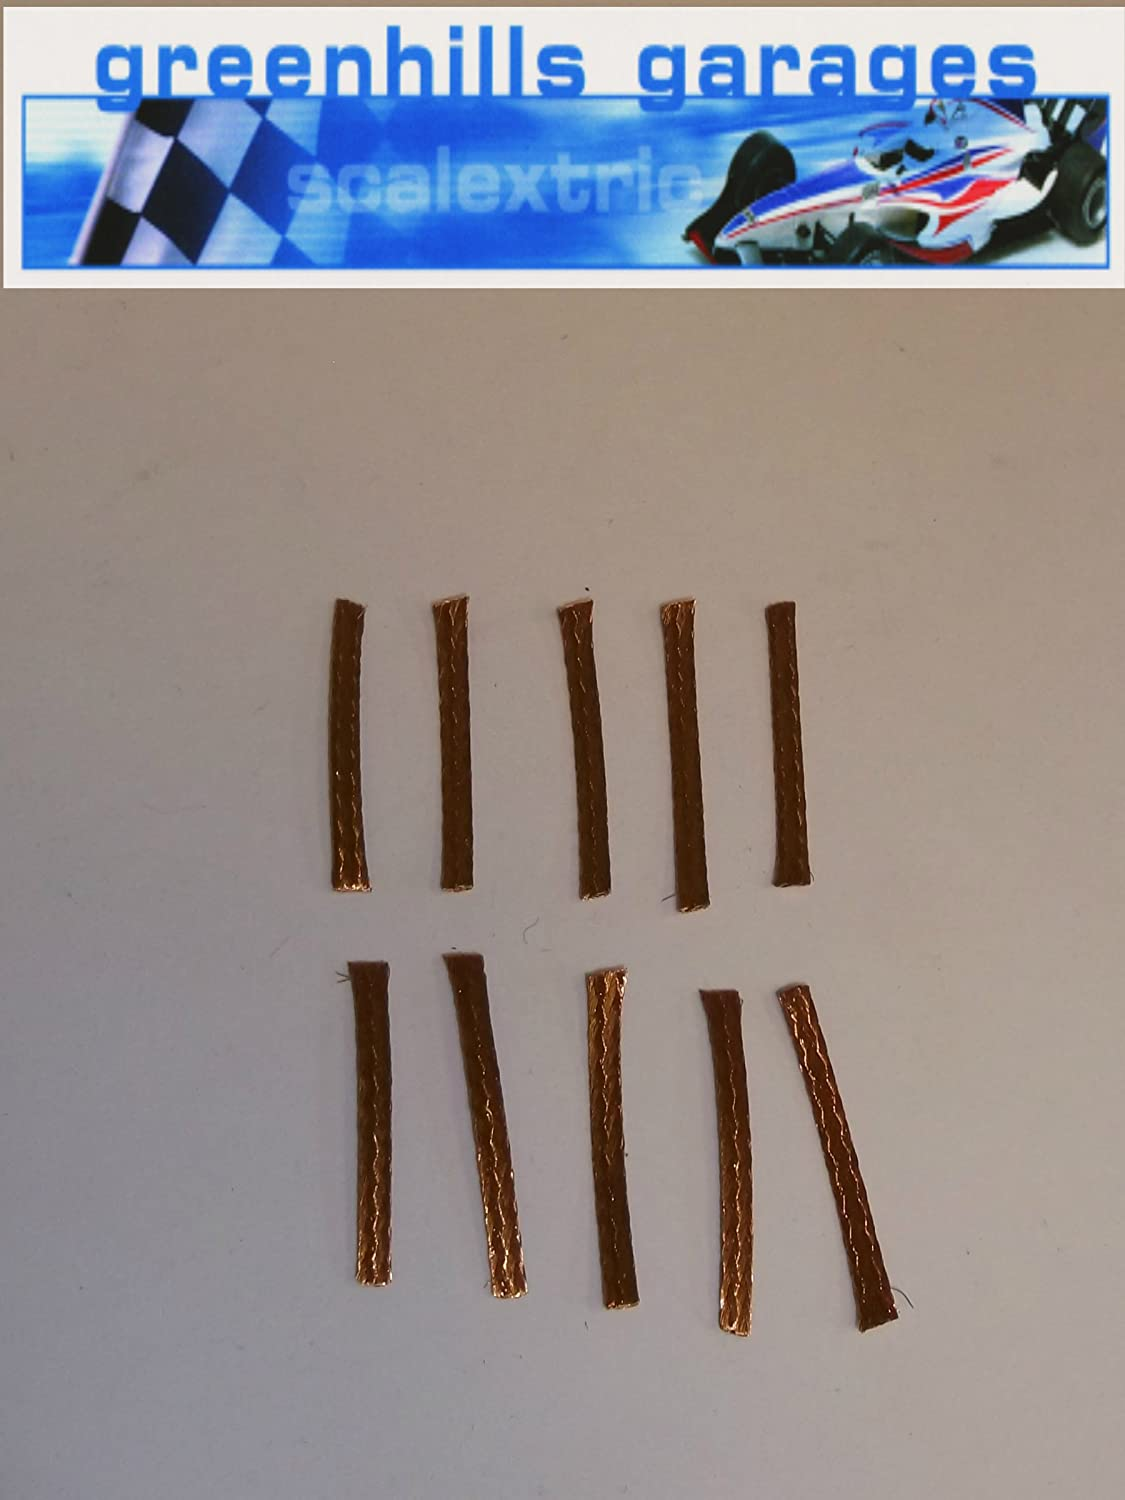 Greenhills Scalextric Micro Scalextric Spares Braids / Brushes x 10 - 100% Copper